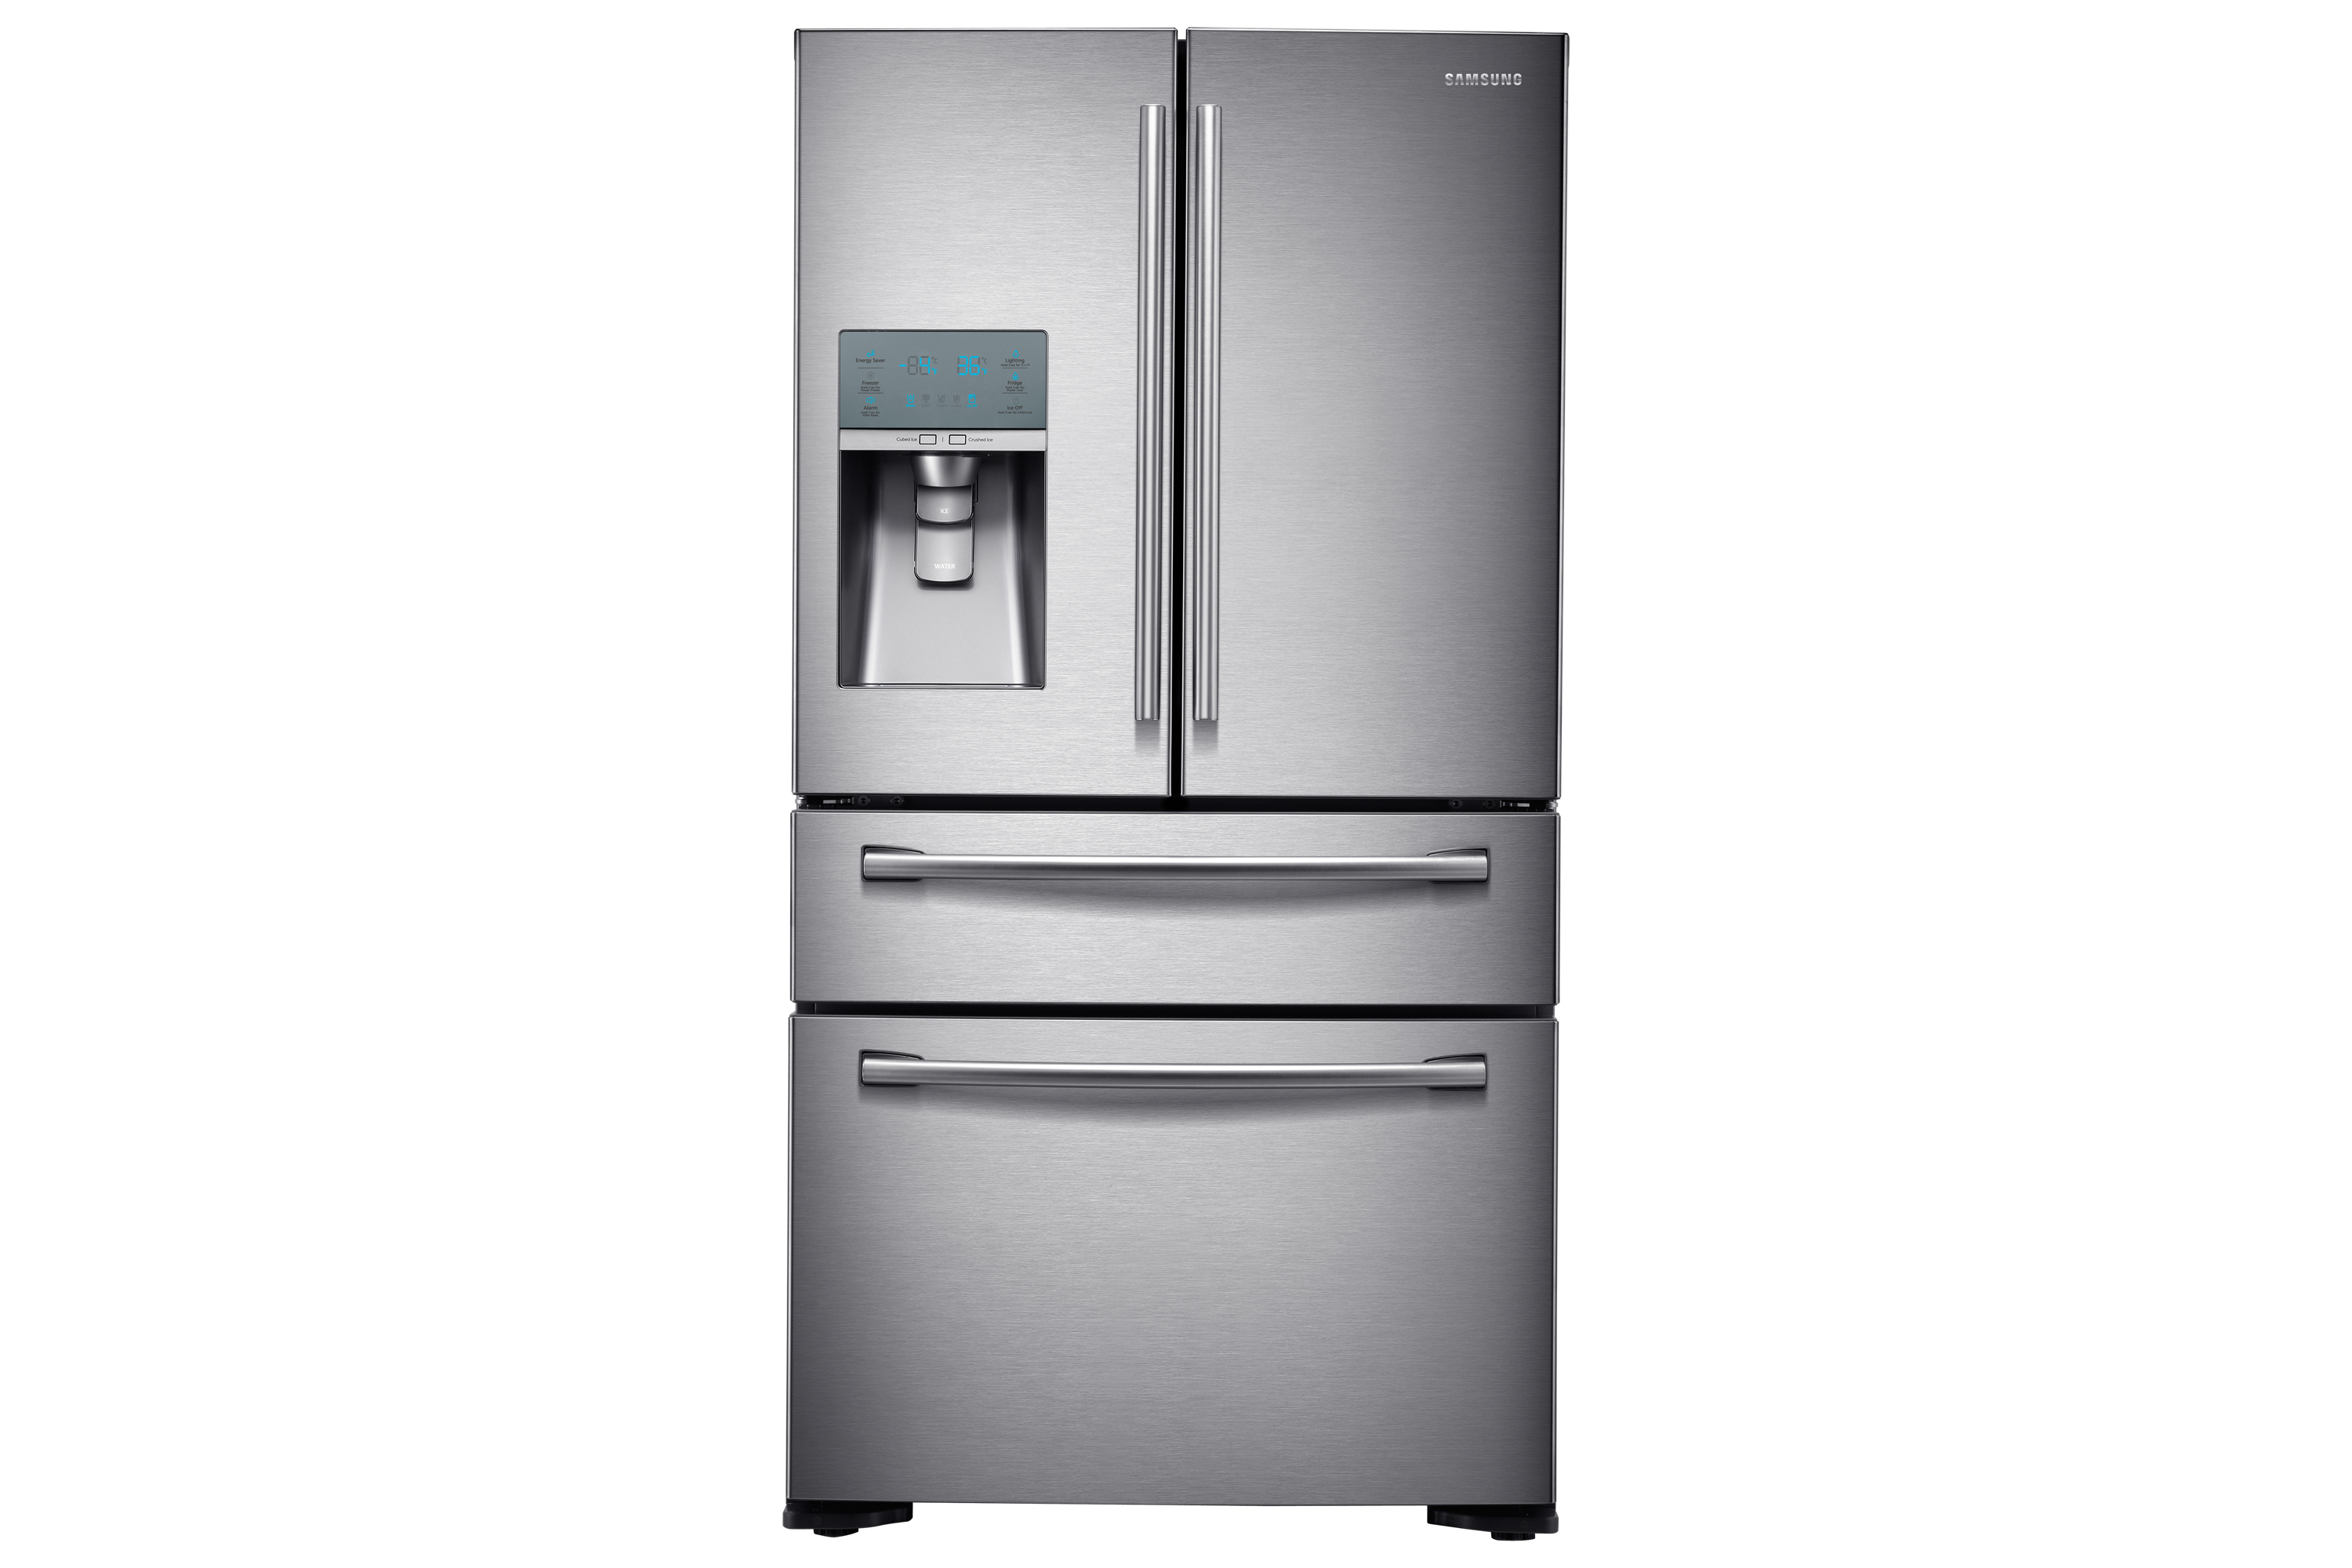 bronze s sunset ft french tepperman refrigerator sale cu door